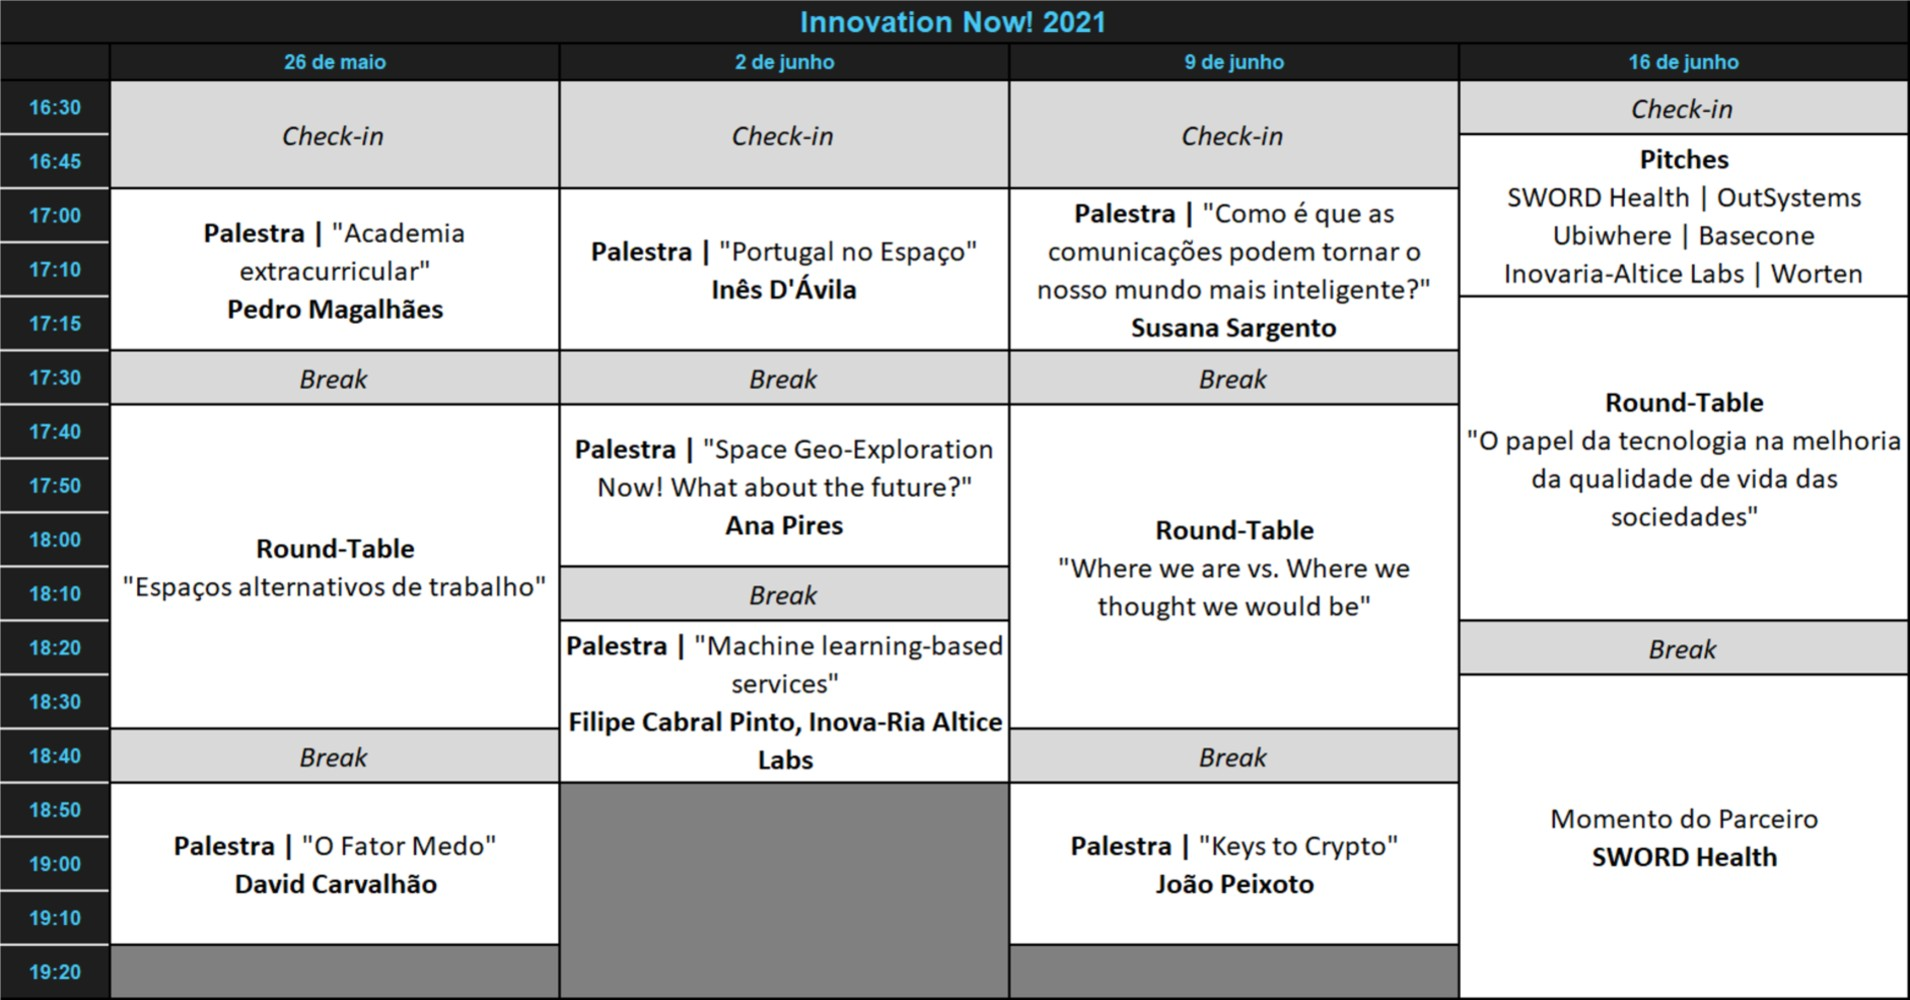 horario innovation now! 2021